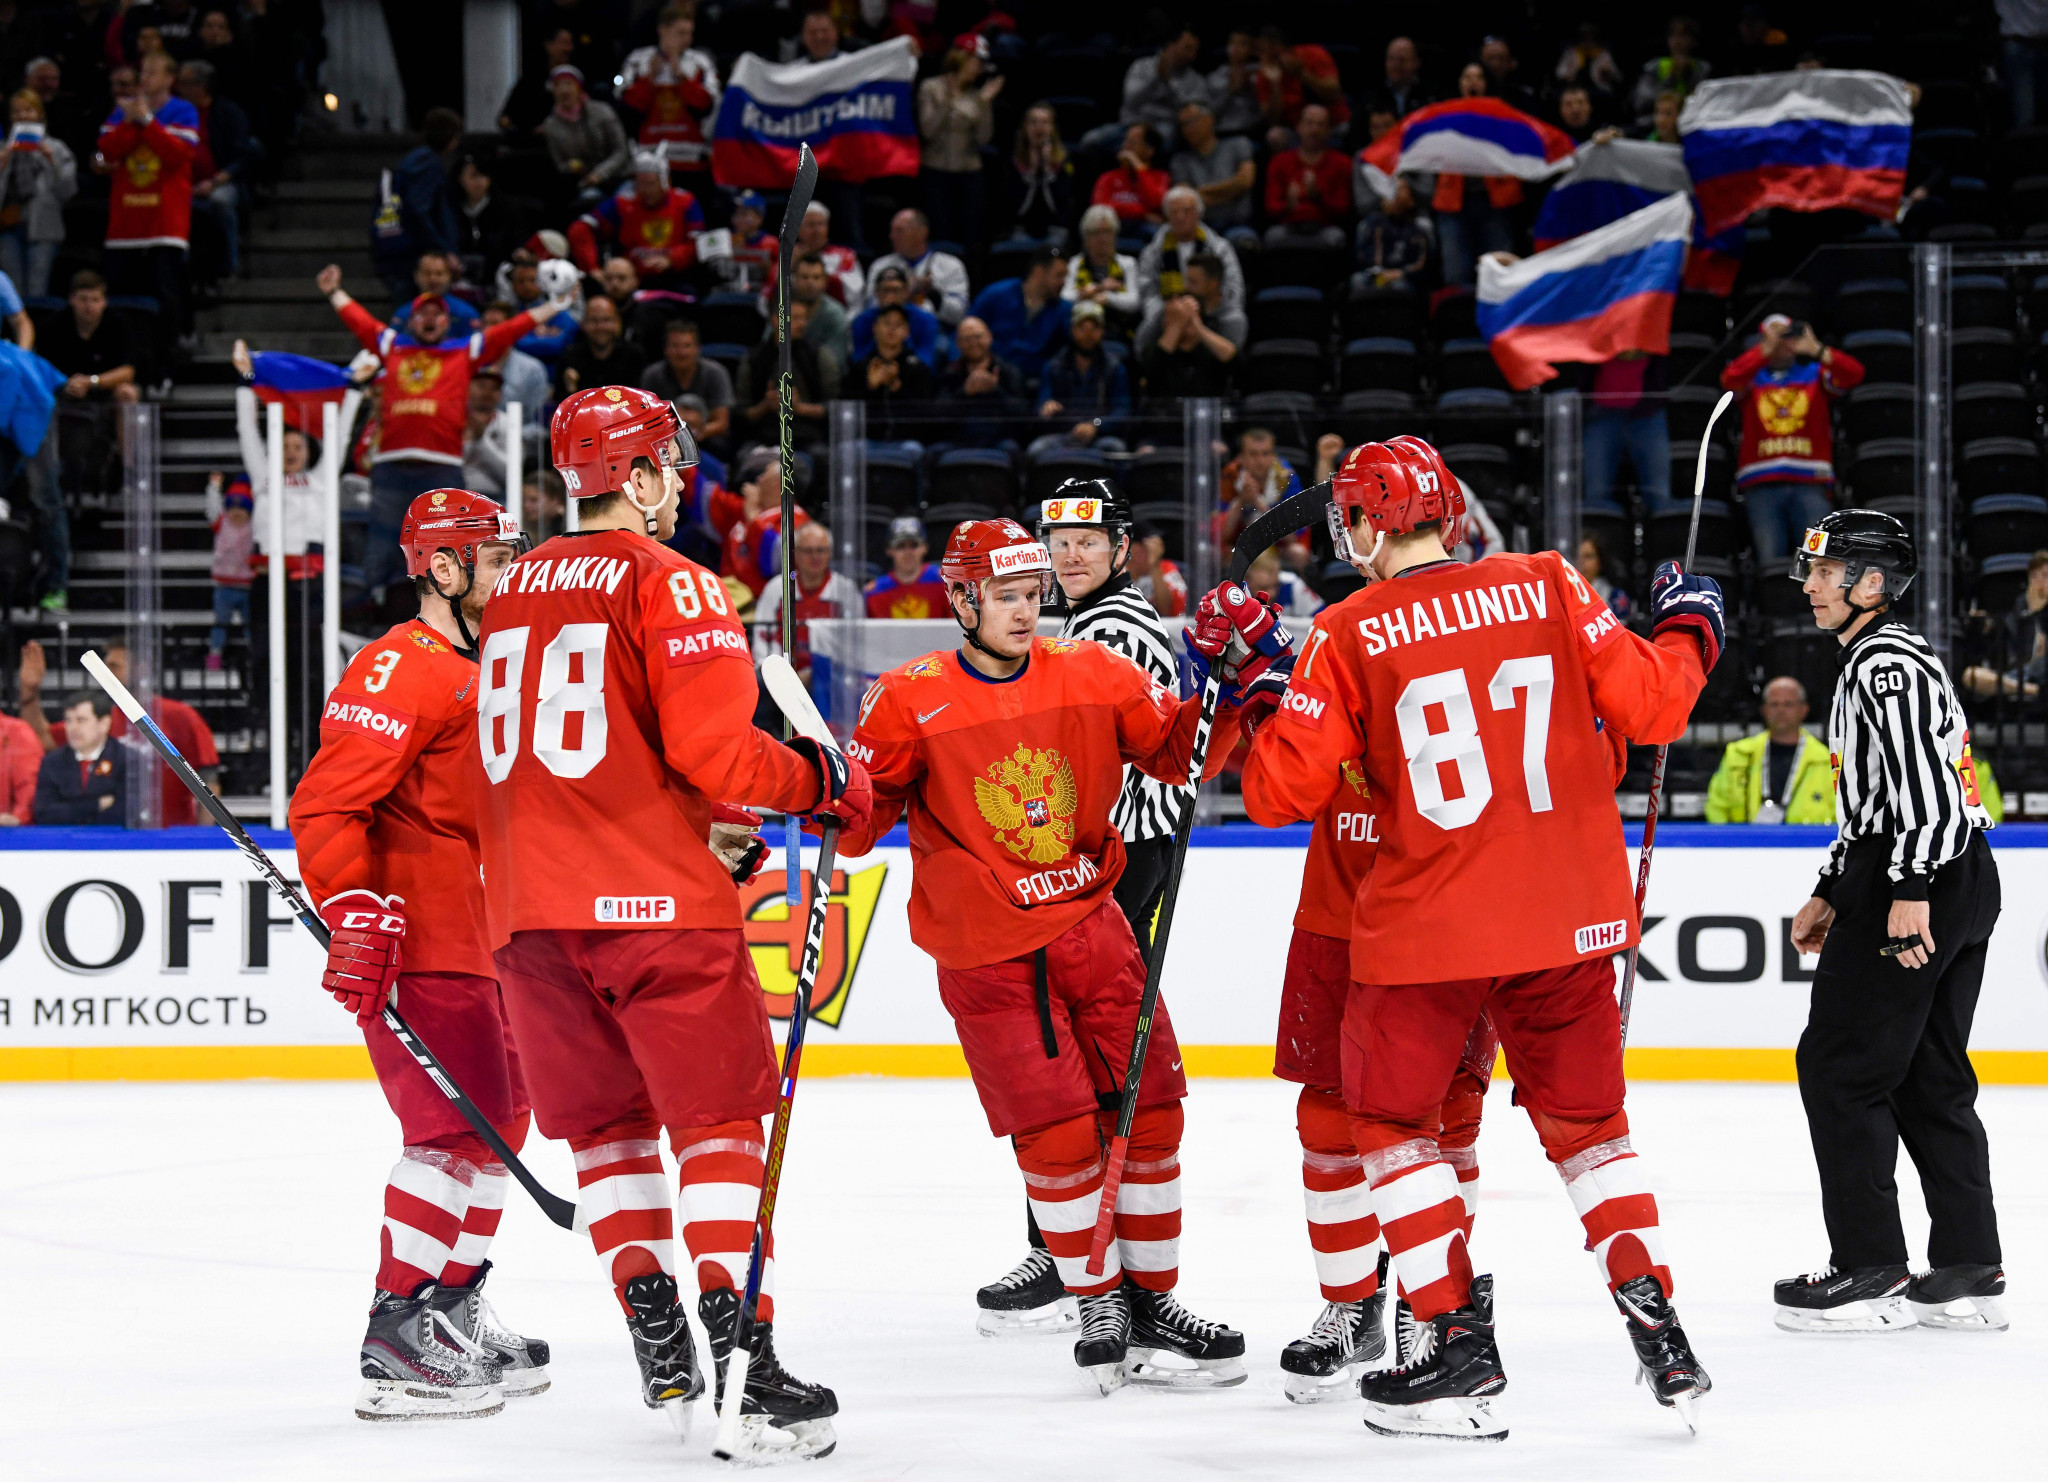 Russia thrash Belarus to remain top of group at IIHF World Championship